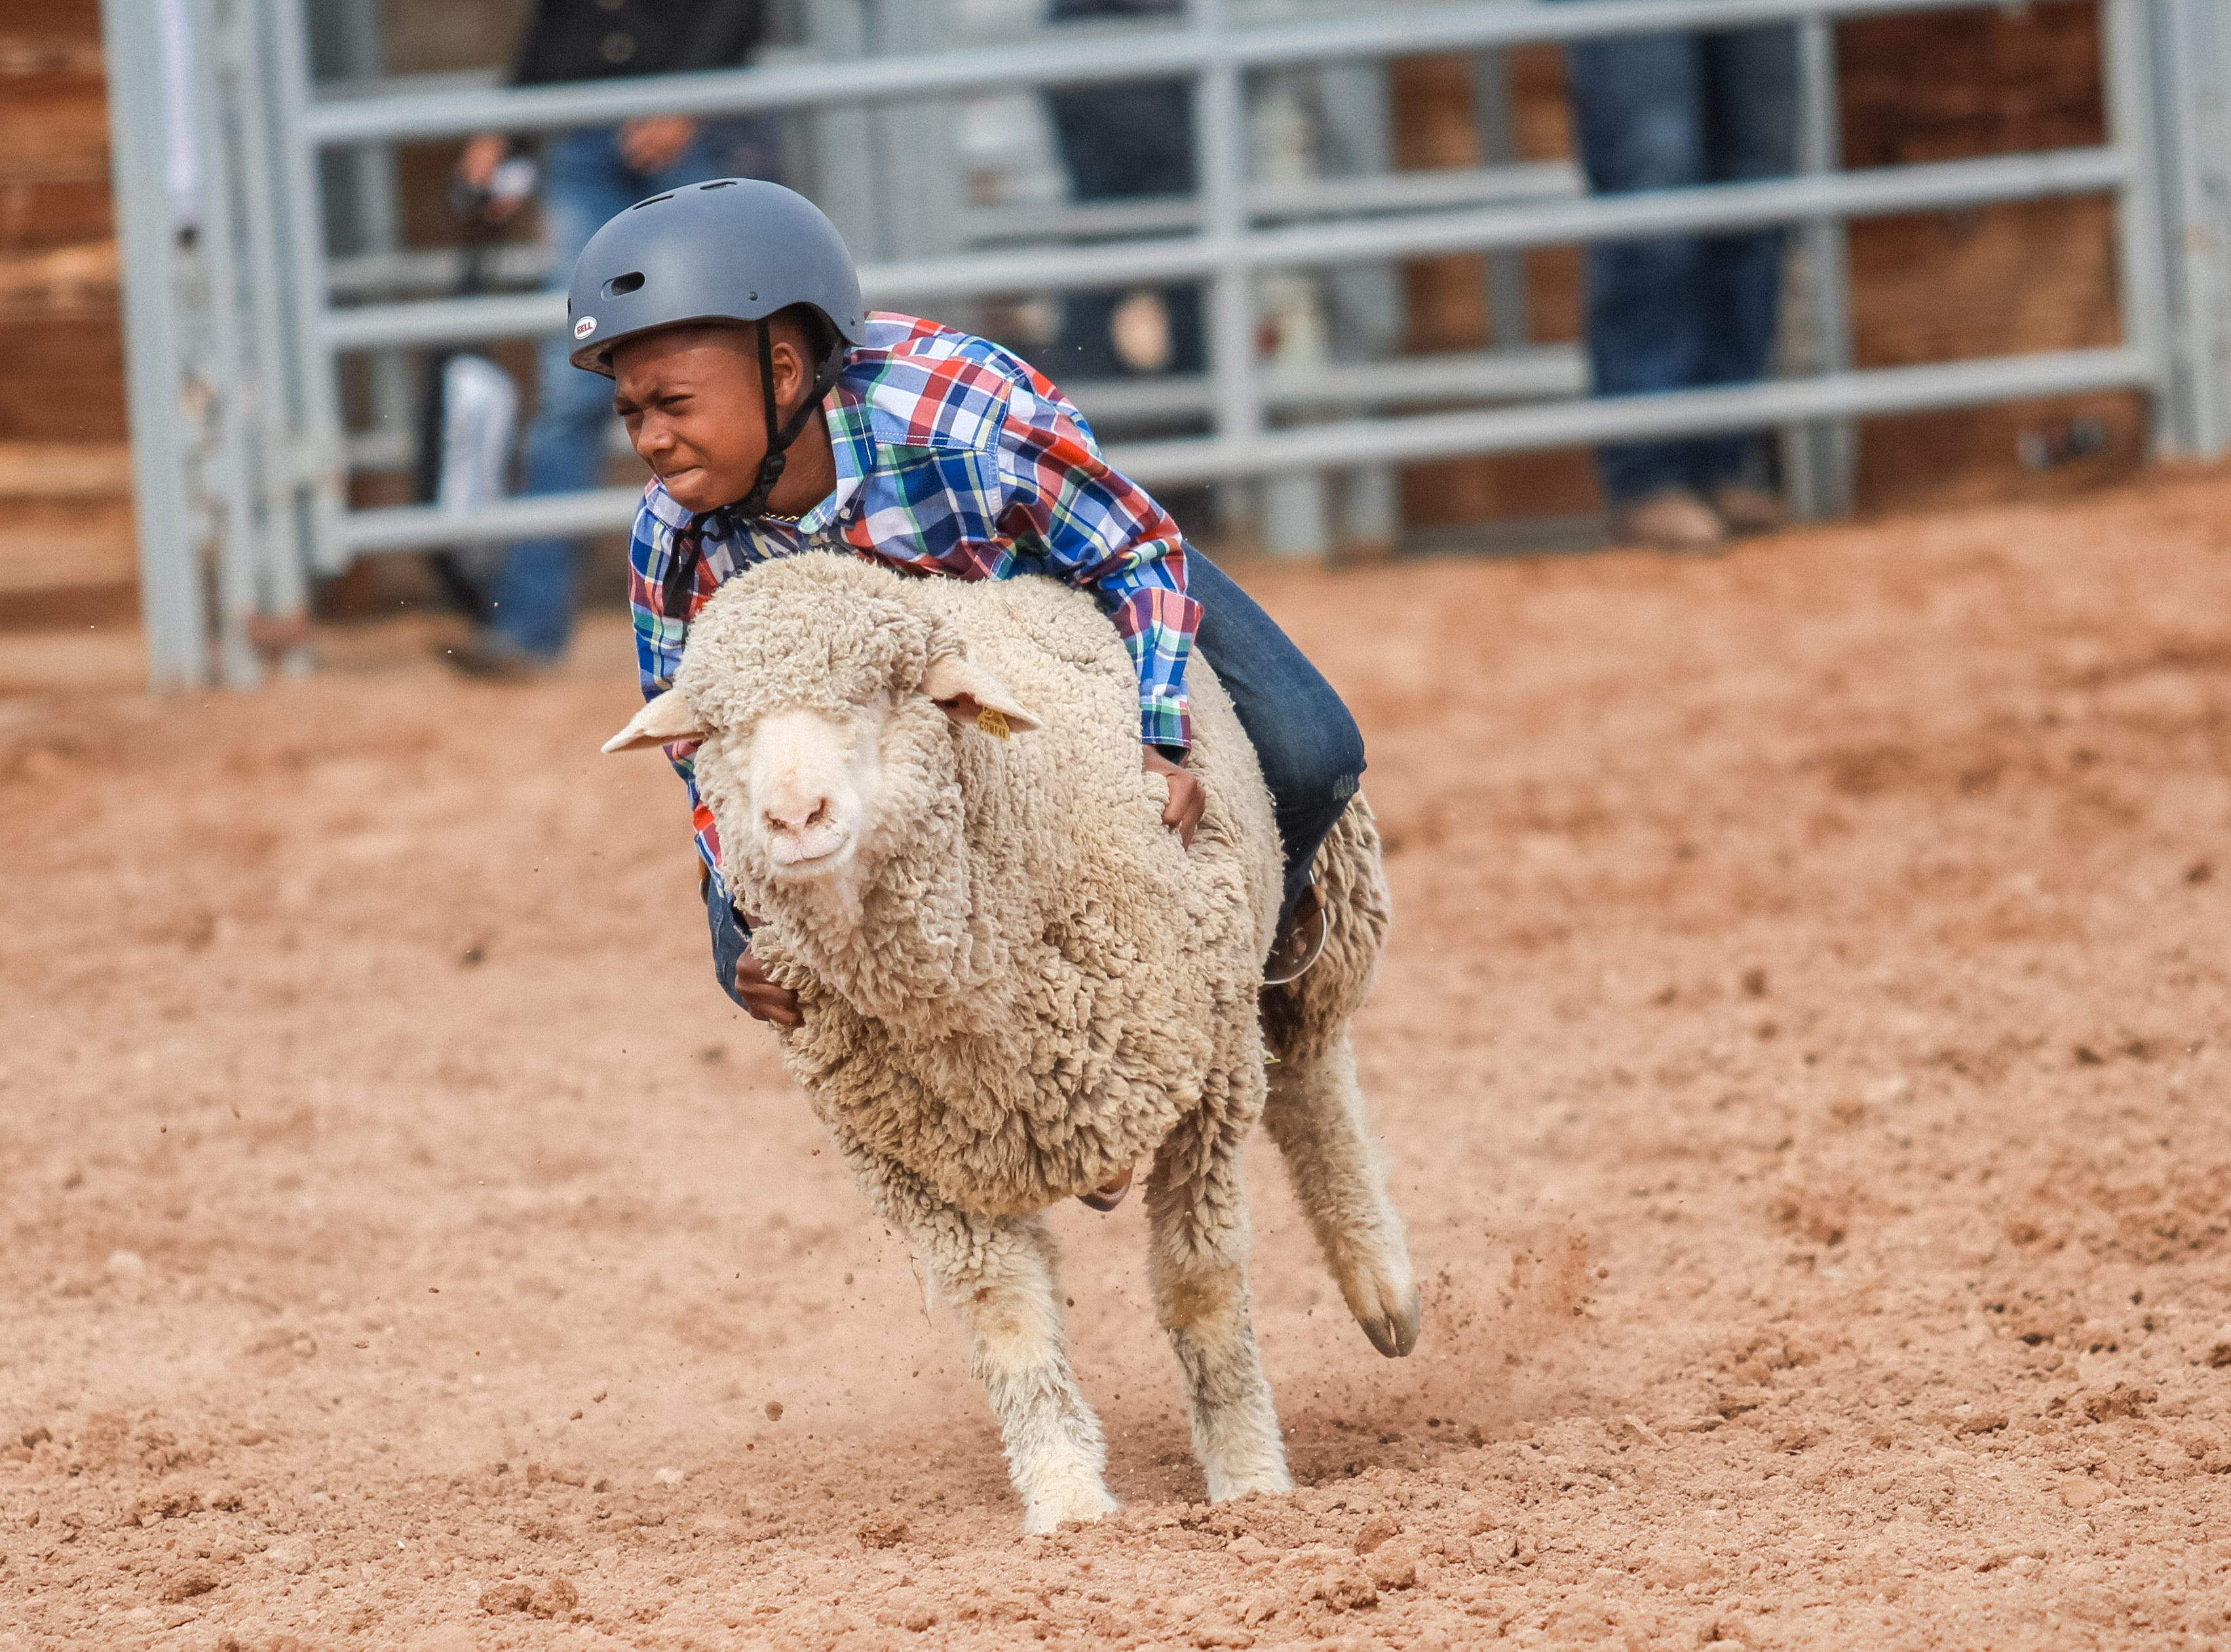 A junior competitor rides a sheep at the Arizona Black Rodeo in Chandler, Arizona on Saturday, March 9, 2019.